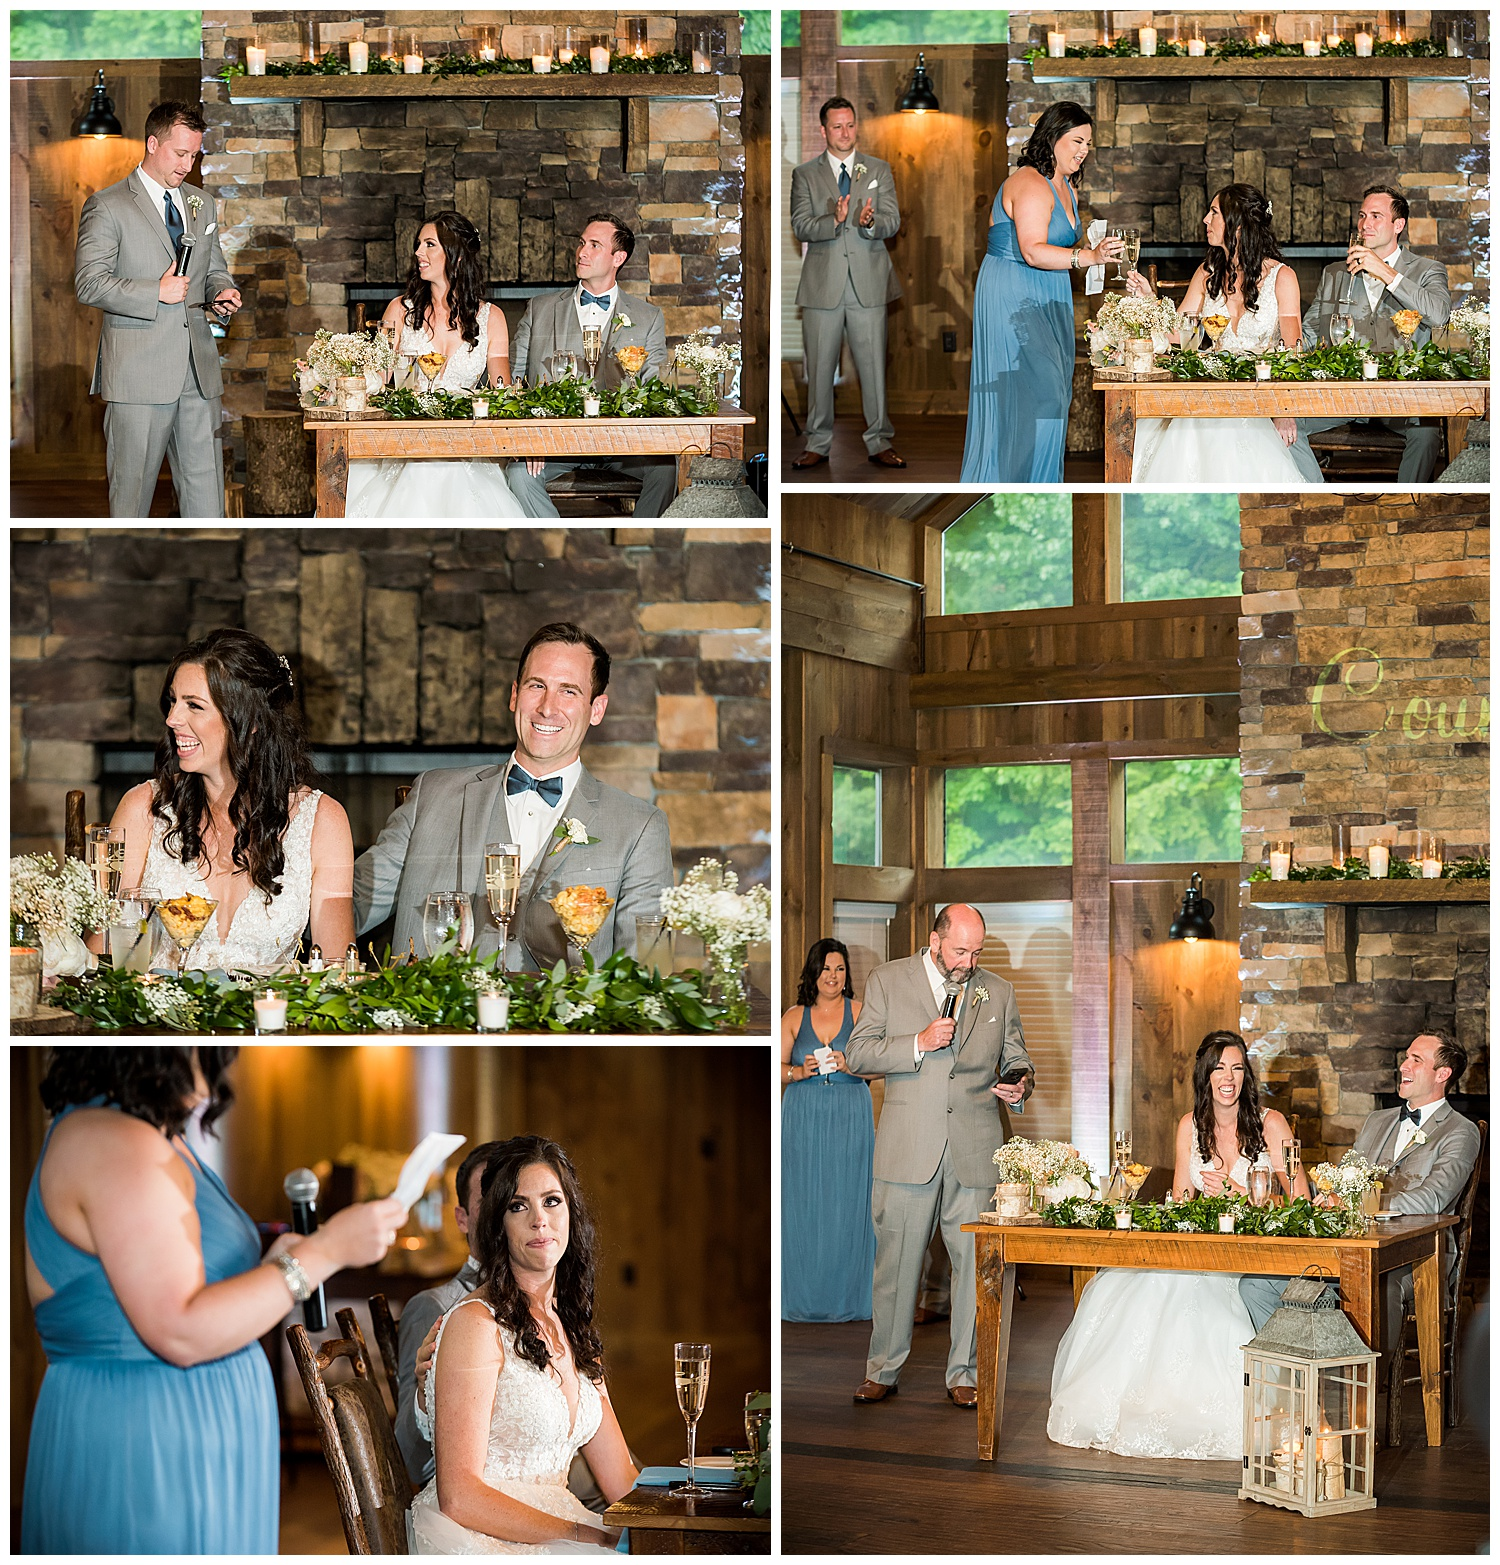 Birch Wood Vineyards Wedding Reception Toasts